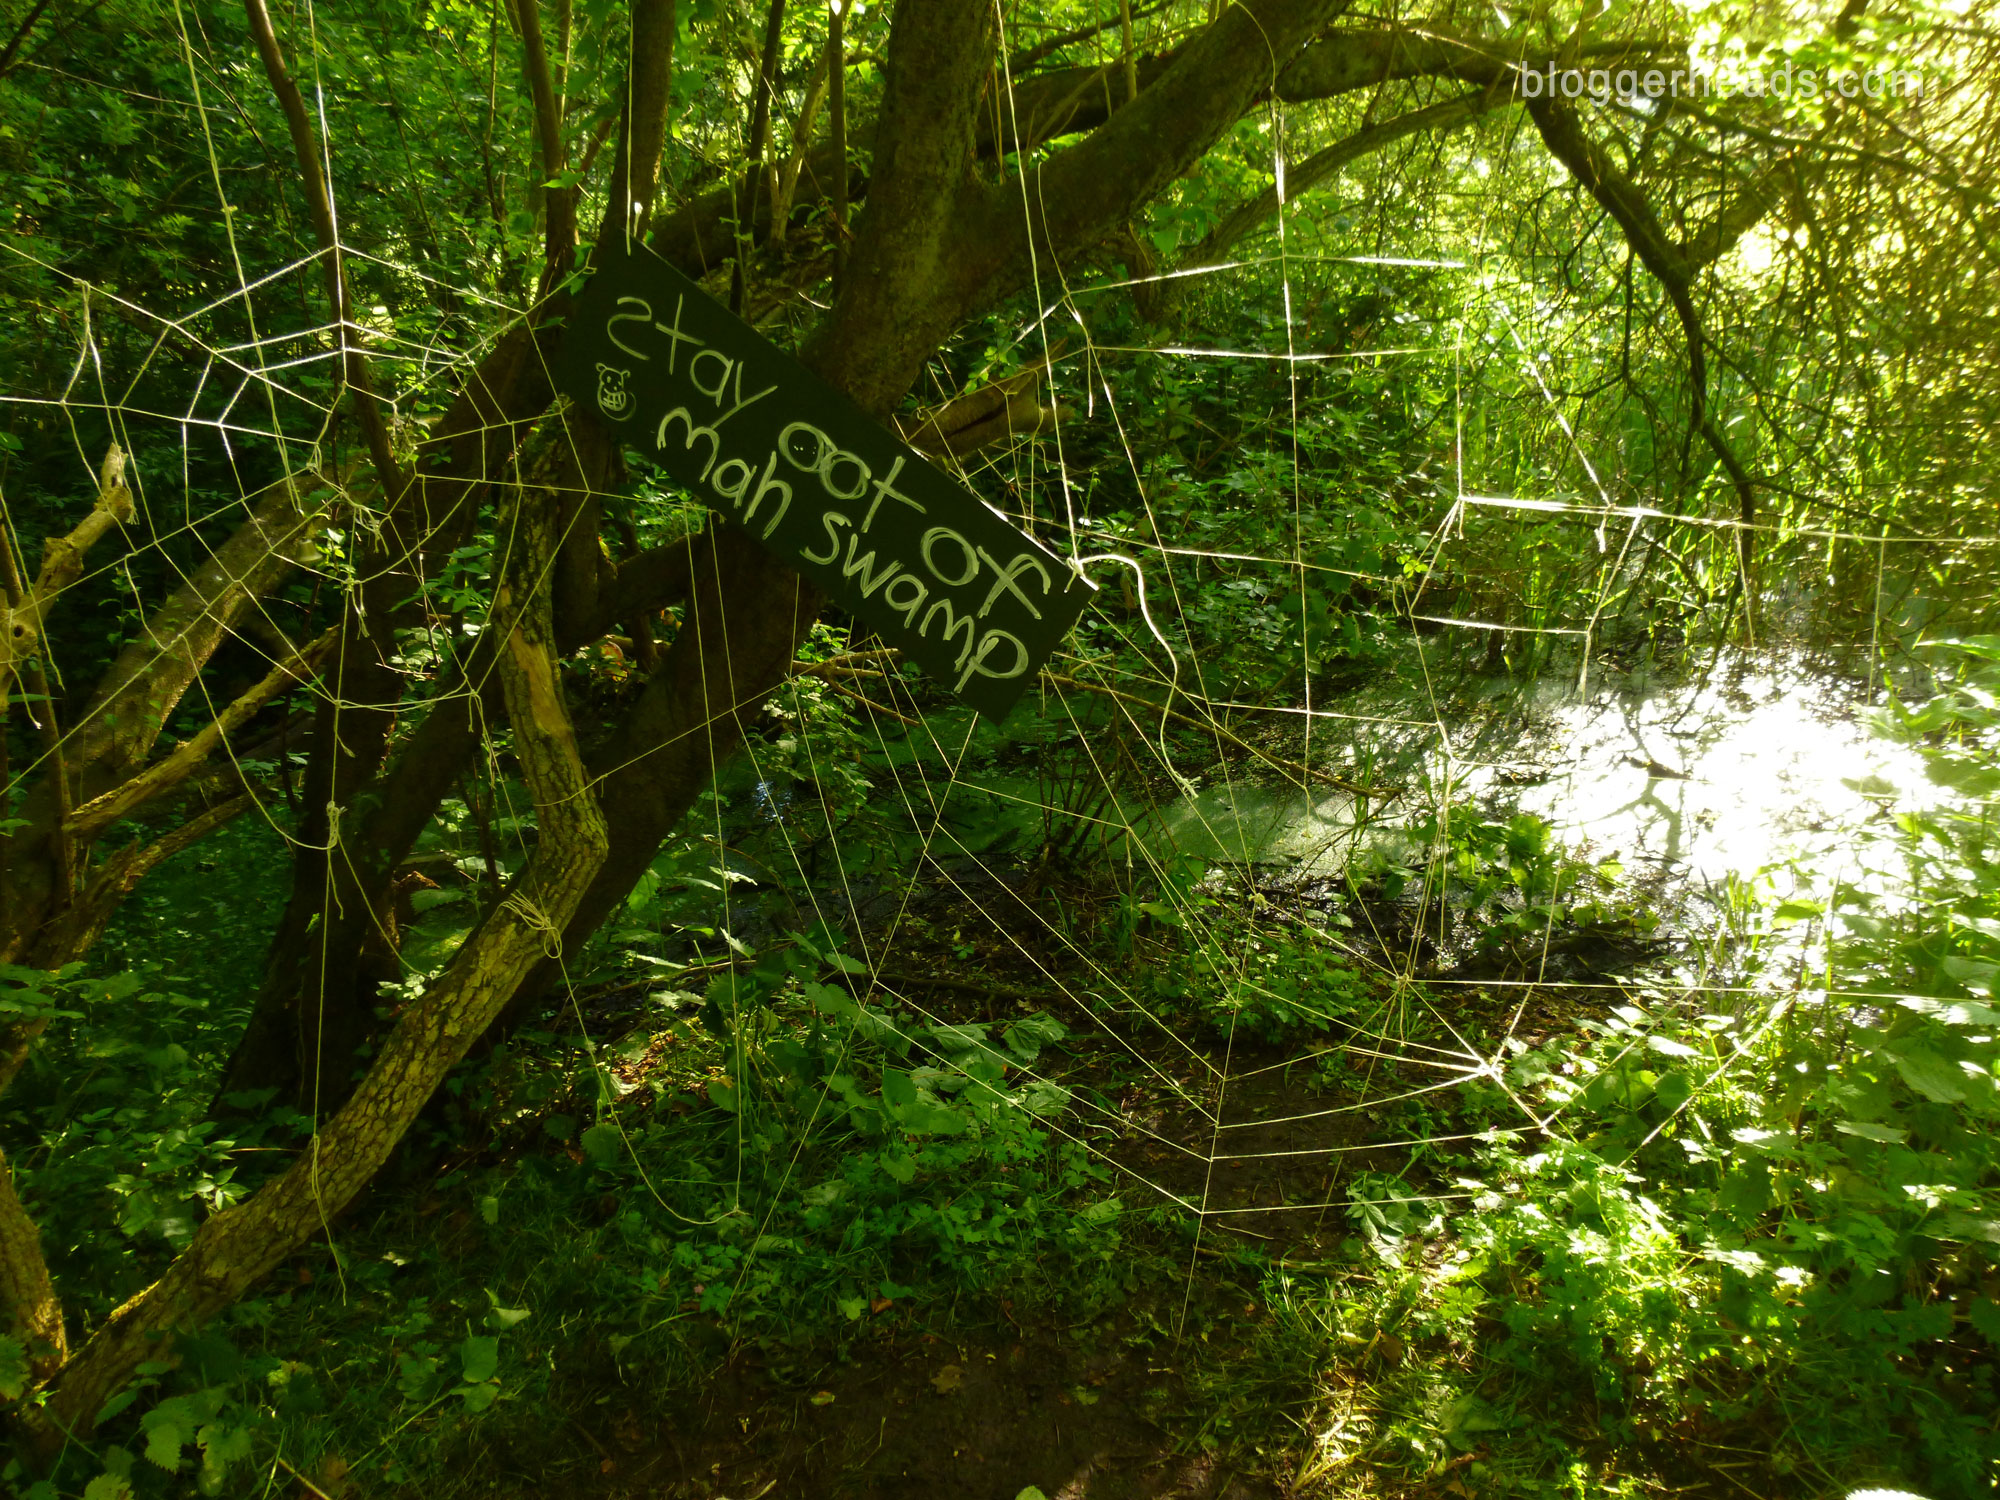 Shreks Swamp  Spider Web Obstacle